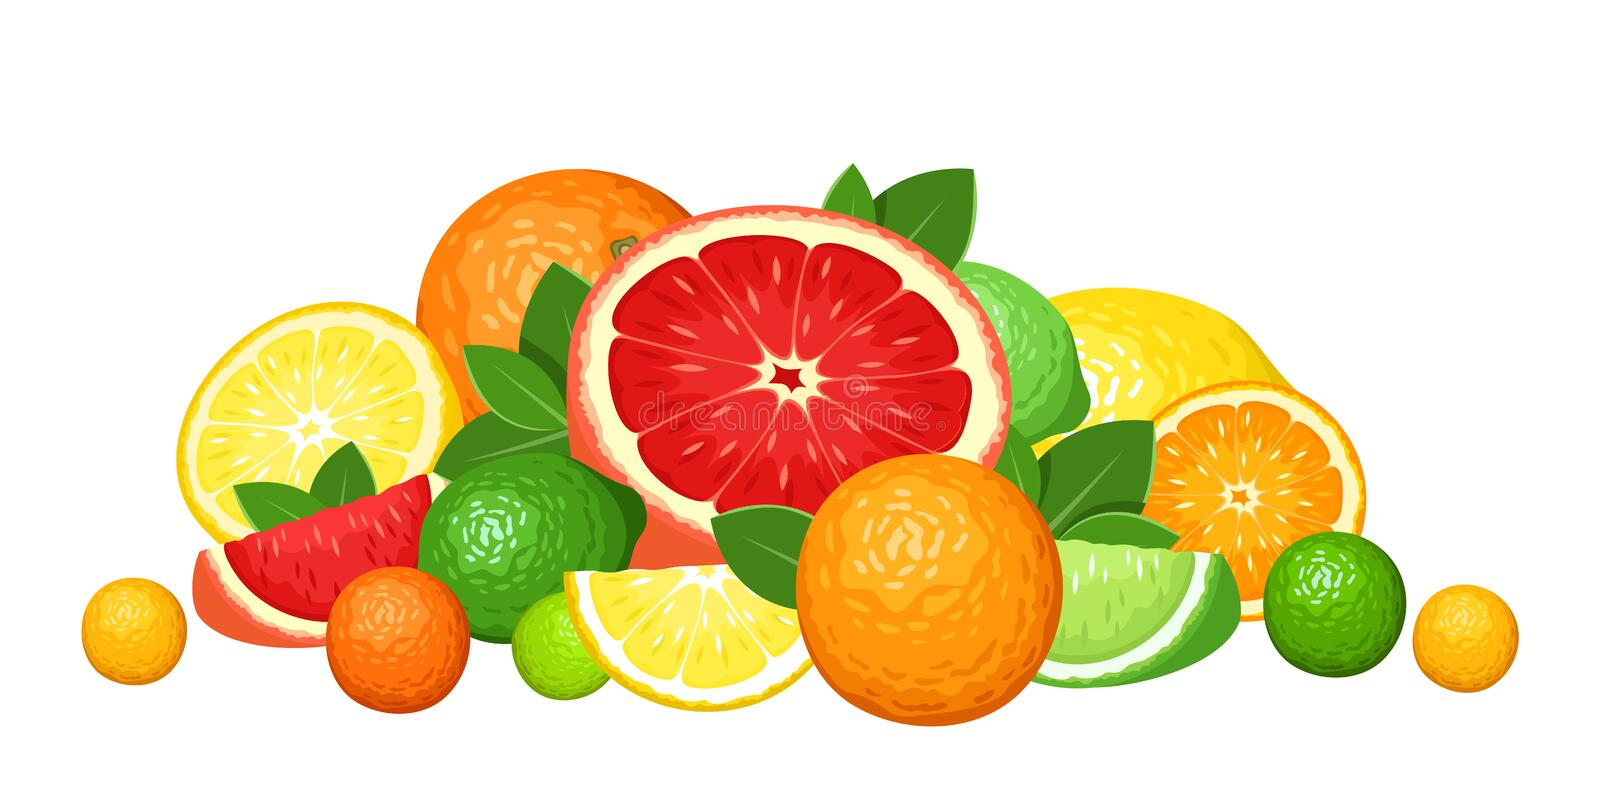 Citrus fruits. Illustration of various citrus fruits on a white background royalty free illustration